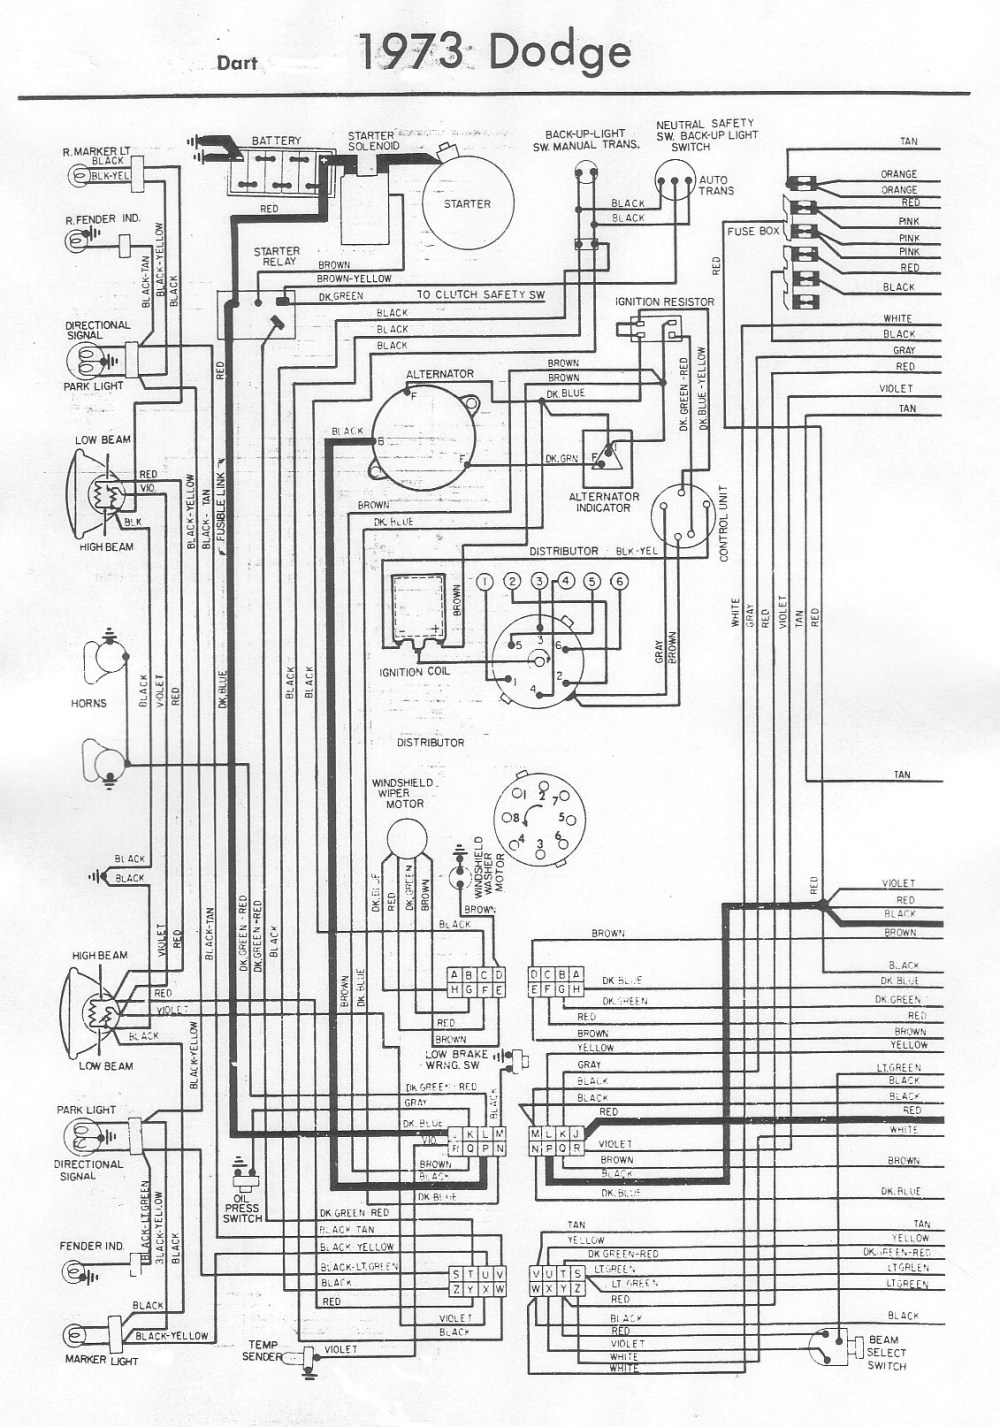 medium resolution of 73 dodge dart wiring diagrams wiring diagrams schema 2002 dodge truck alternator wiring schematic 1970 dodge challenger alternator wiring